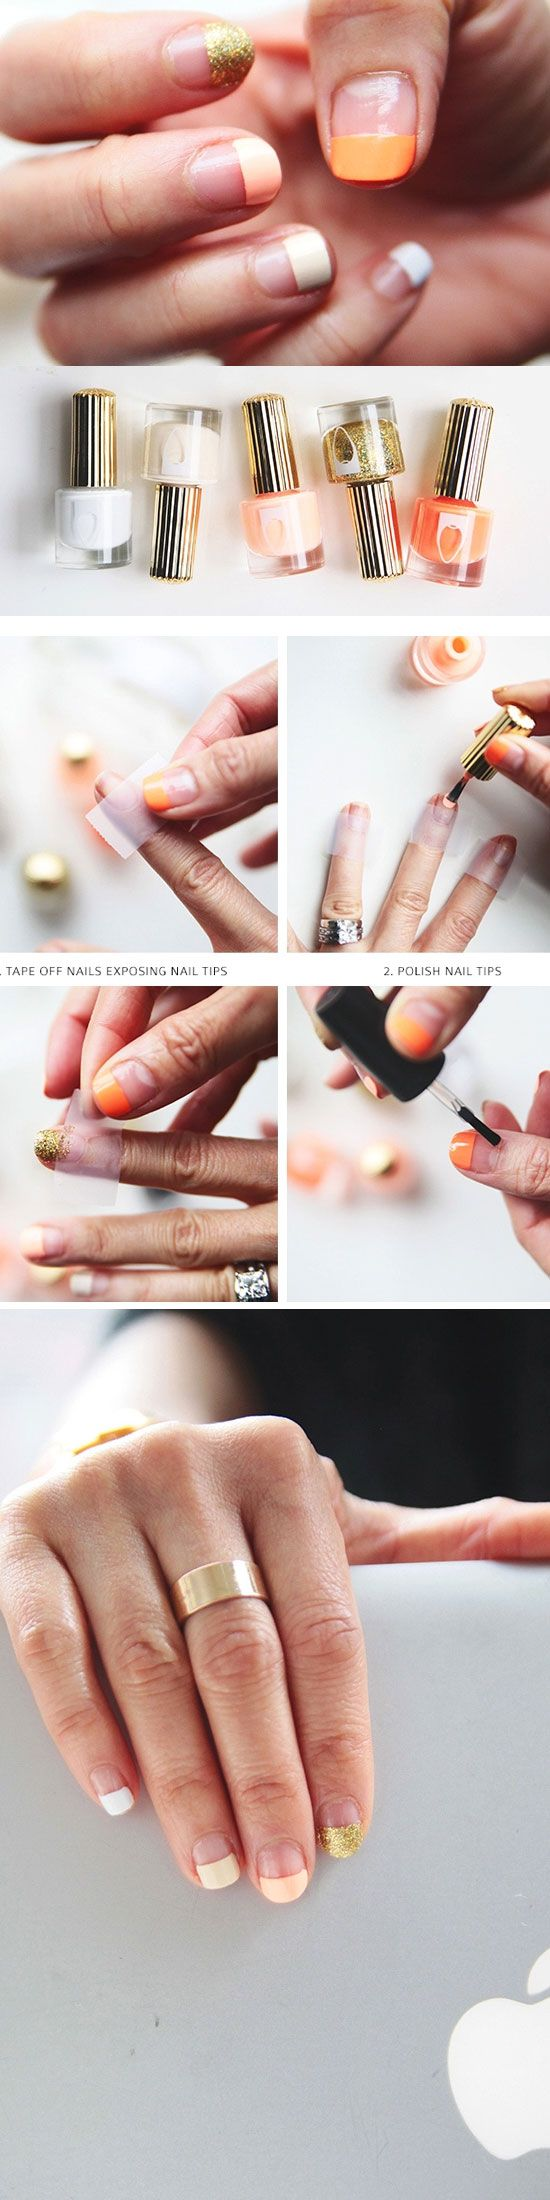 24 Easy Spring Nail Designs for Short Nails | Pinterest | Ombre ...